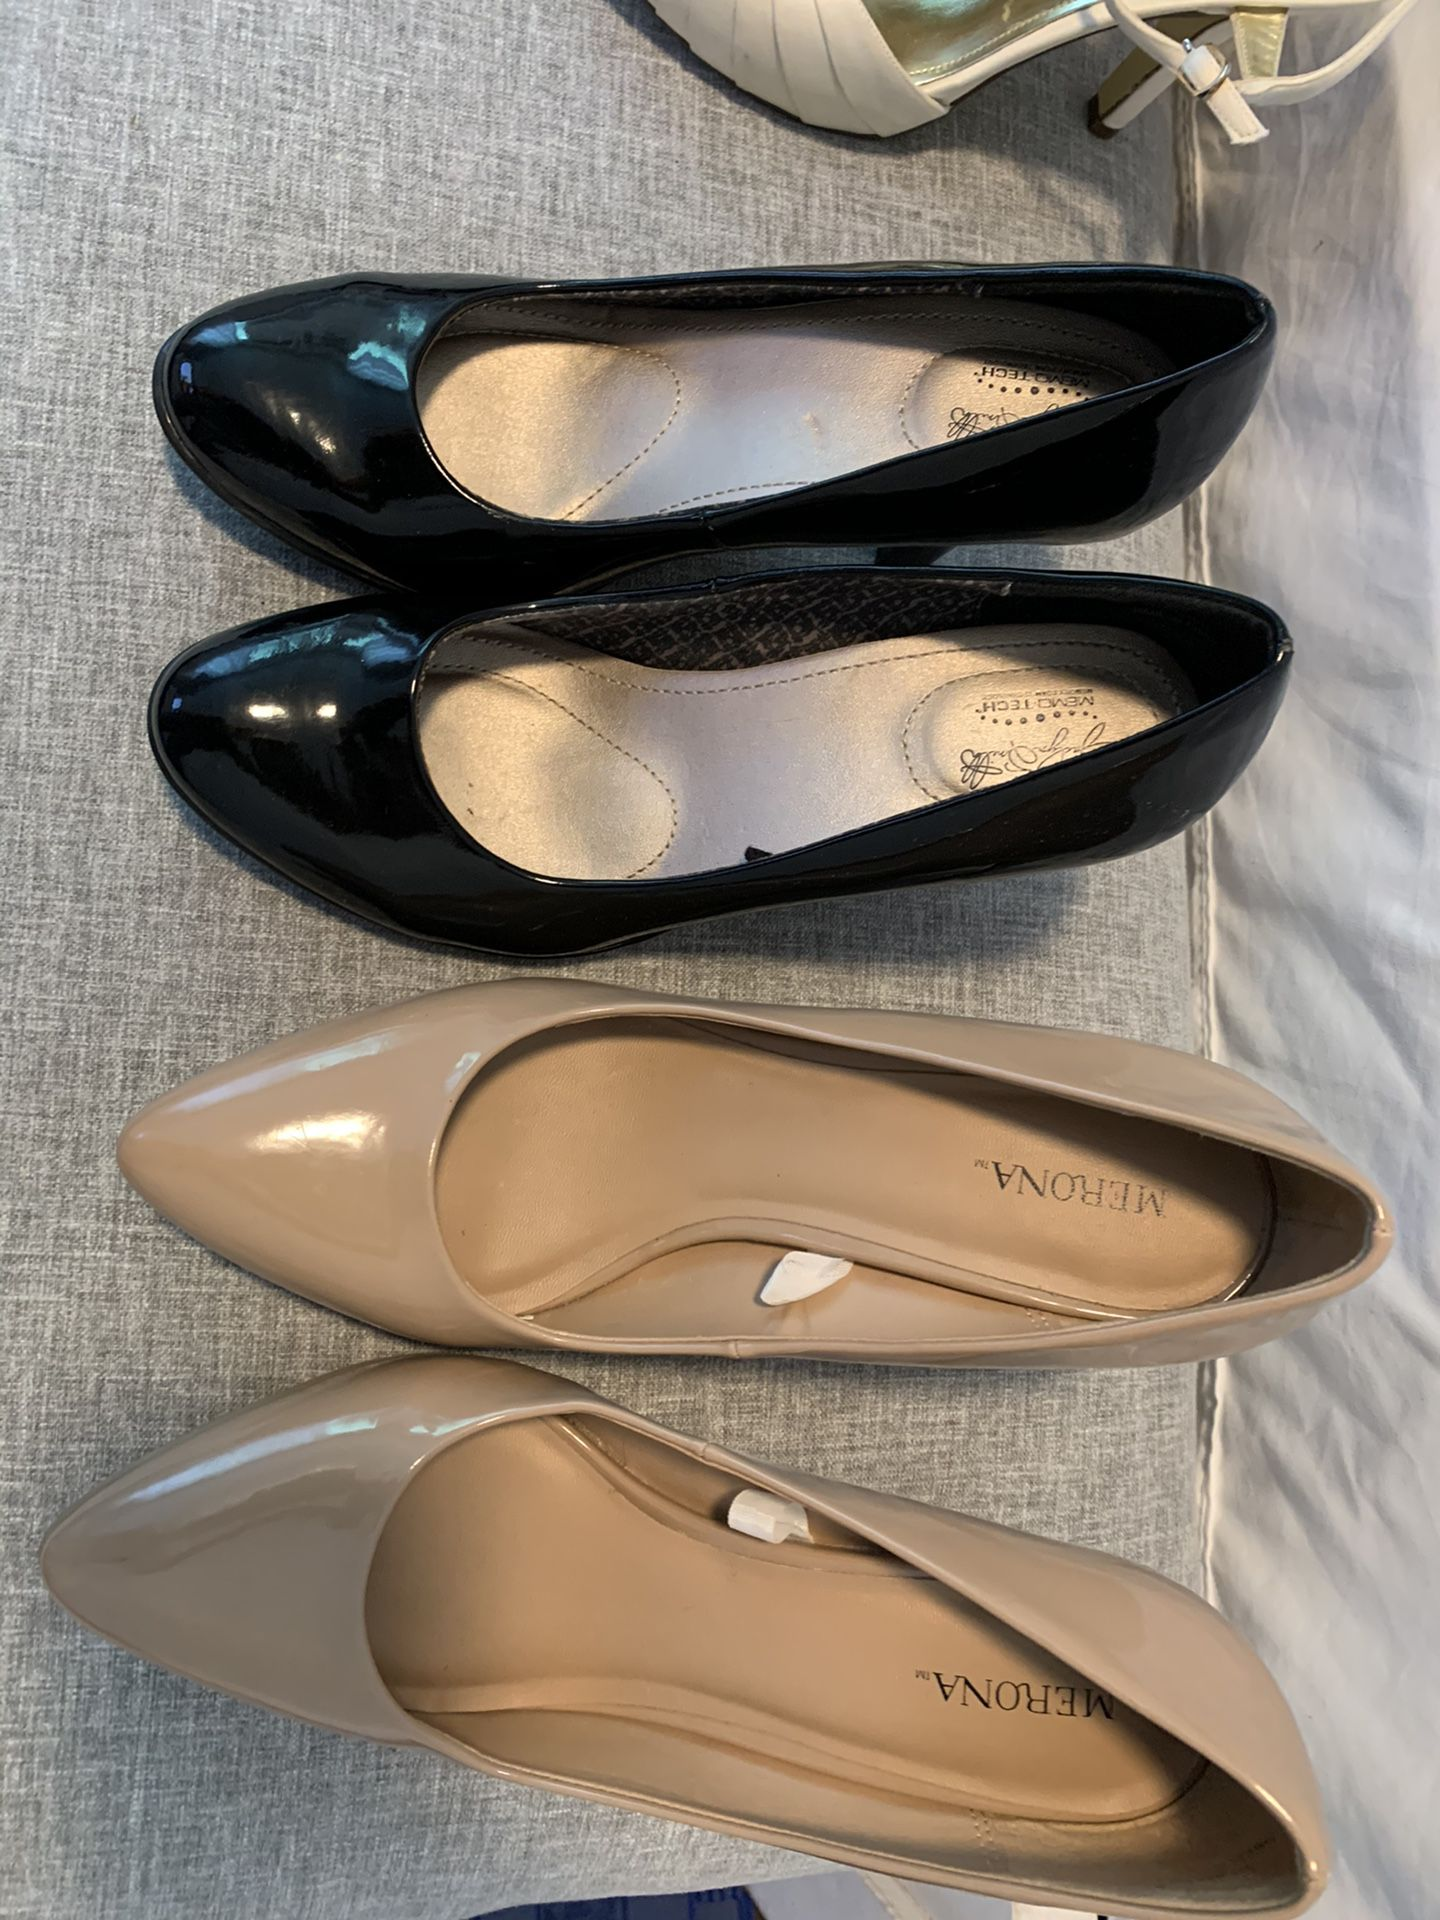 Size 7 shoes, the beige shoe is size 8